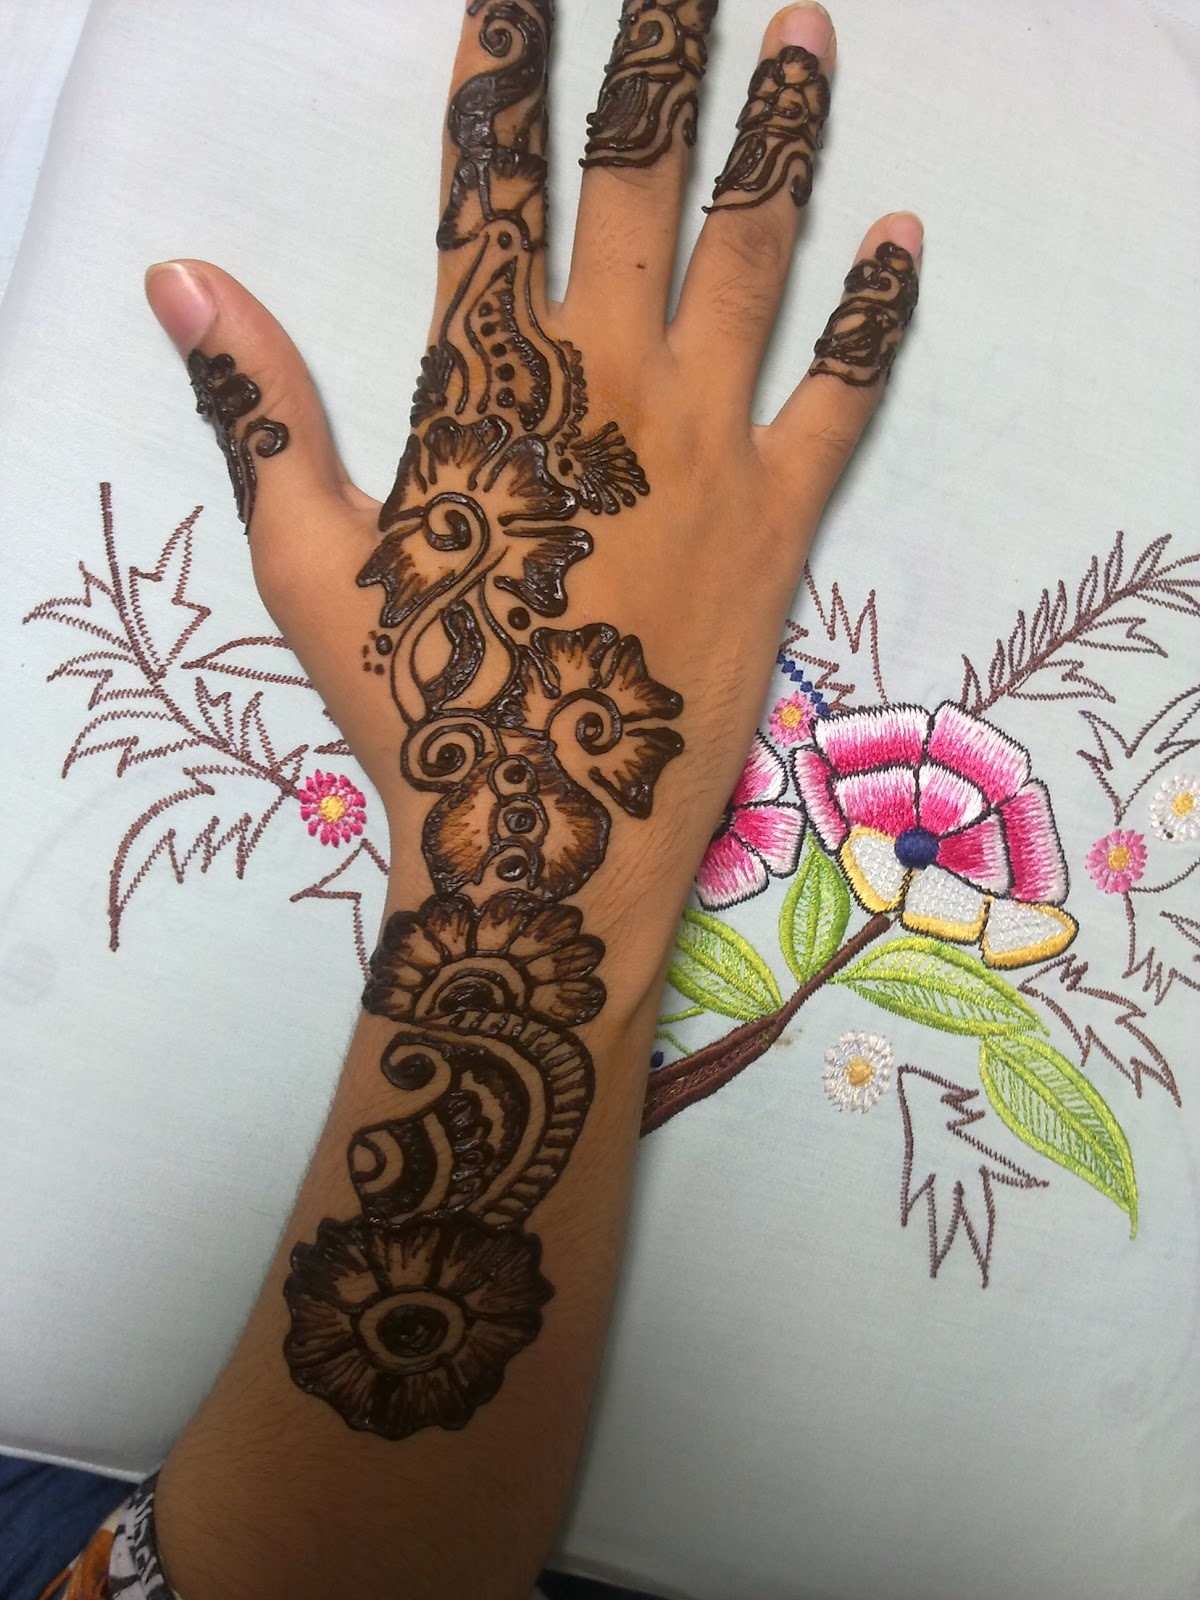 Mehndi Hands New : Mehndi designs for hands new arabic